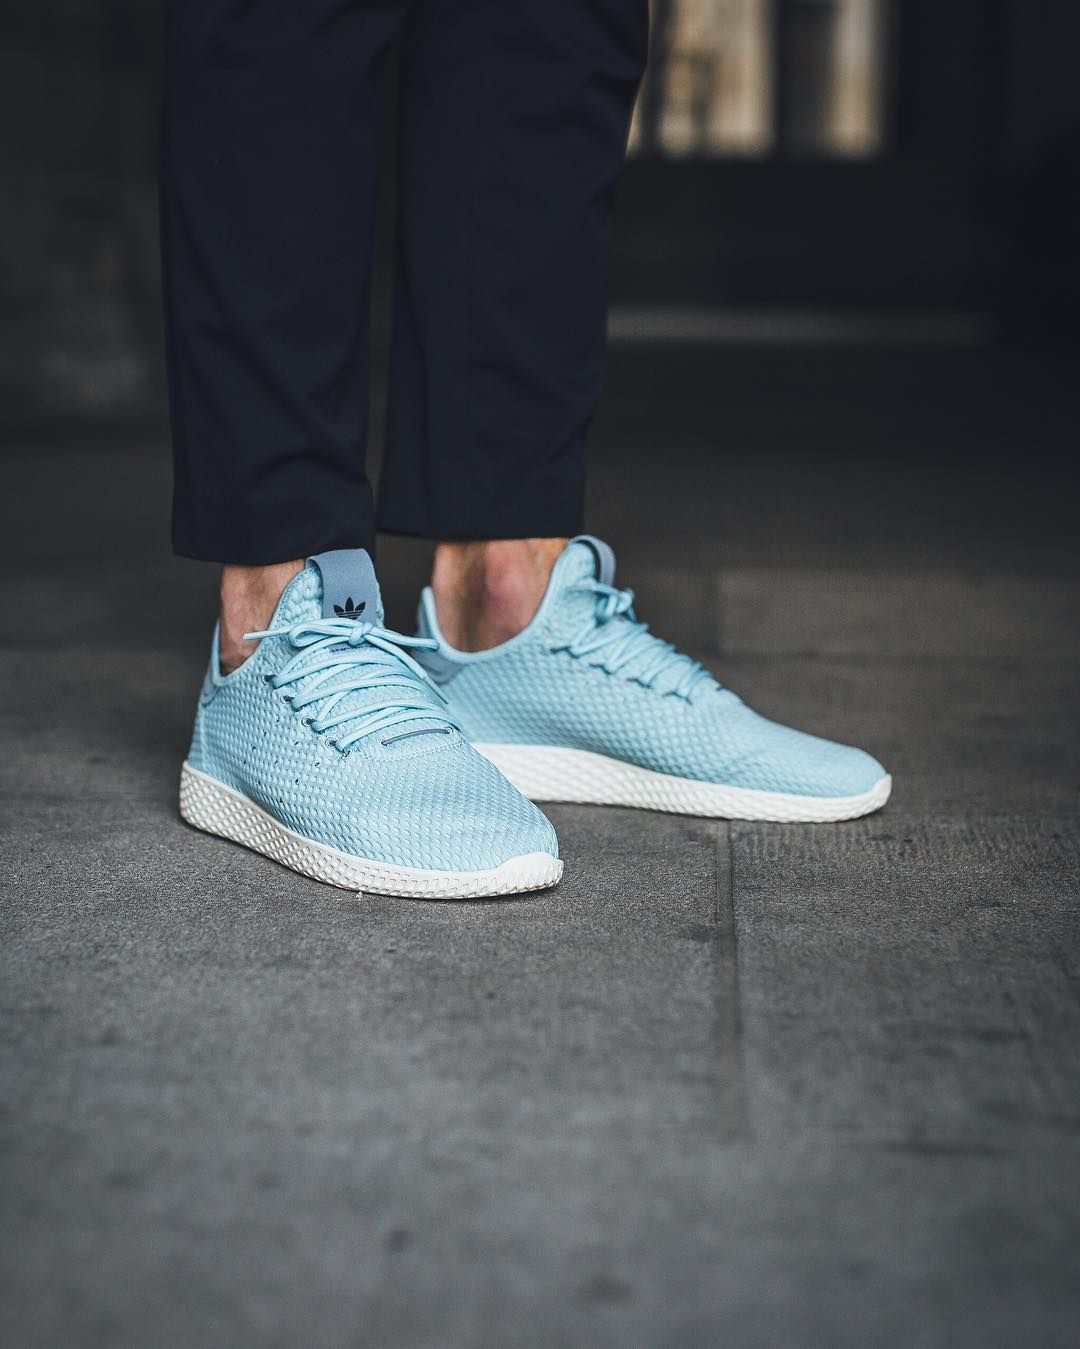 53a90793286 Pharrell Williams x adidas Tennis Hu